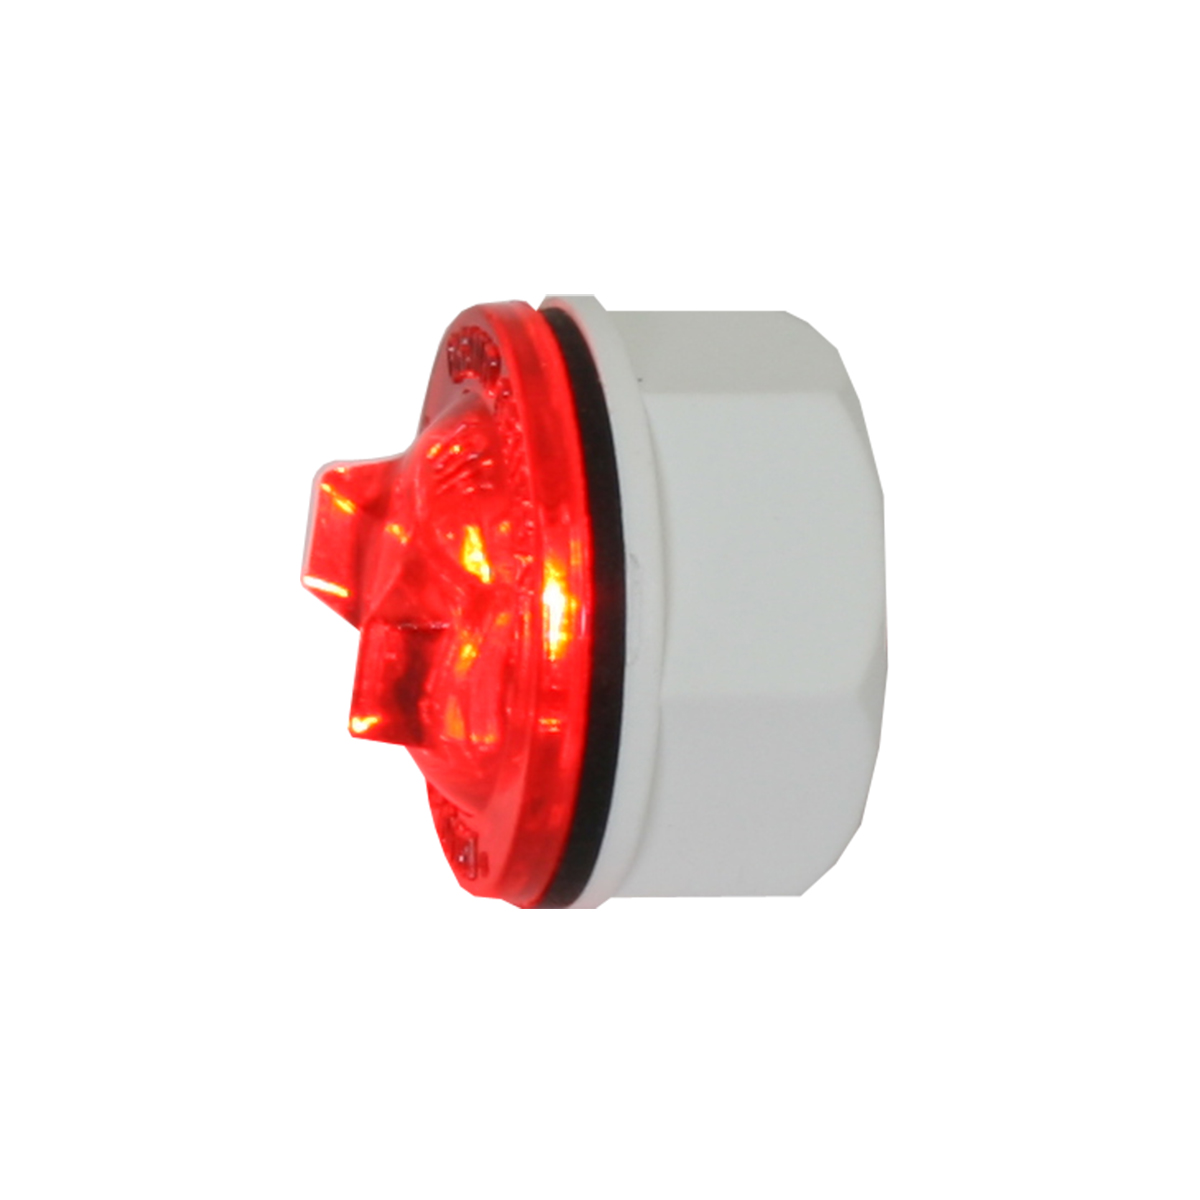 "75282 1"" Dual Function Mini Push/Screw-in Wide Angle LED Light"